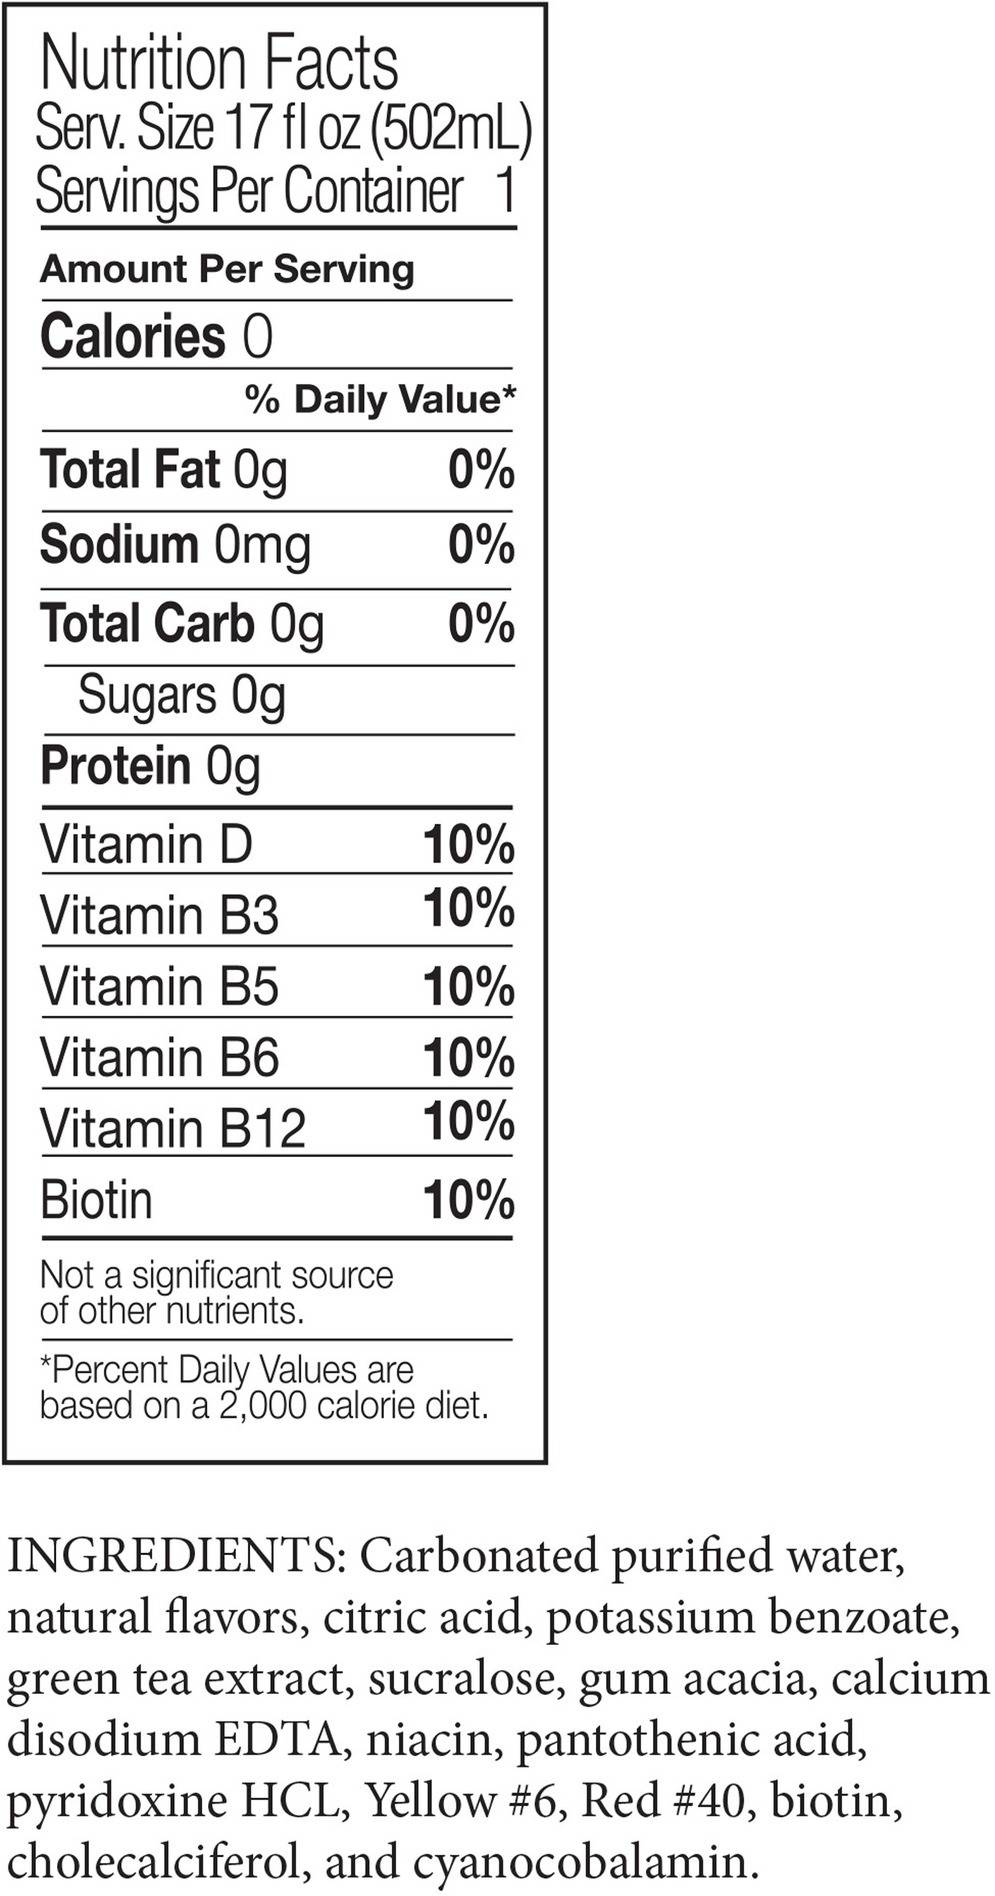 Image describing nutrition information for product Vita Ice Peach Mango